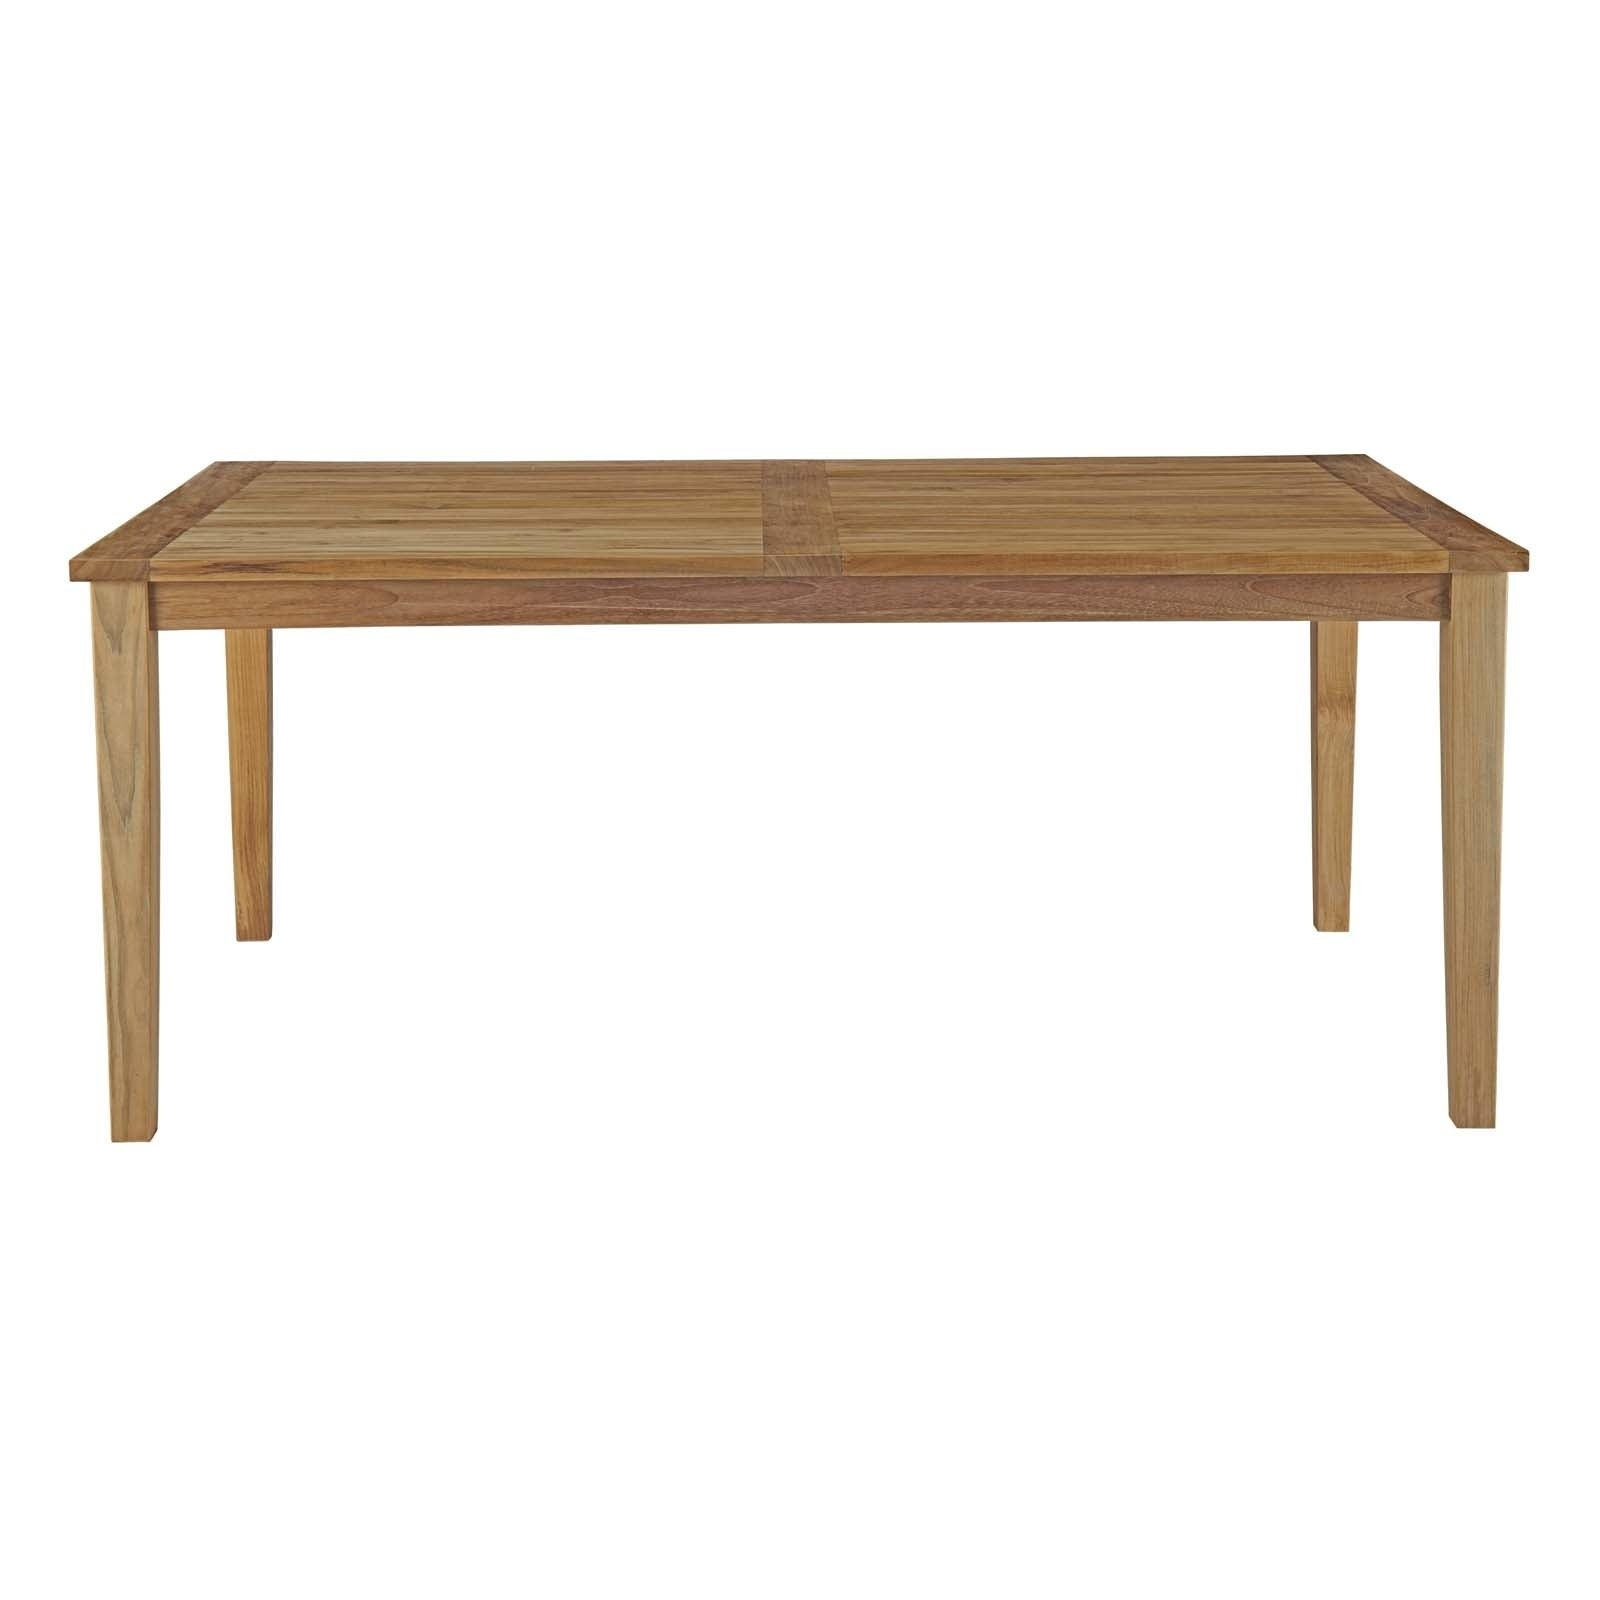 Marina Outdoor Patio Teak Dining Table